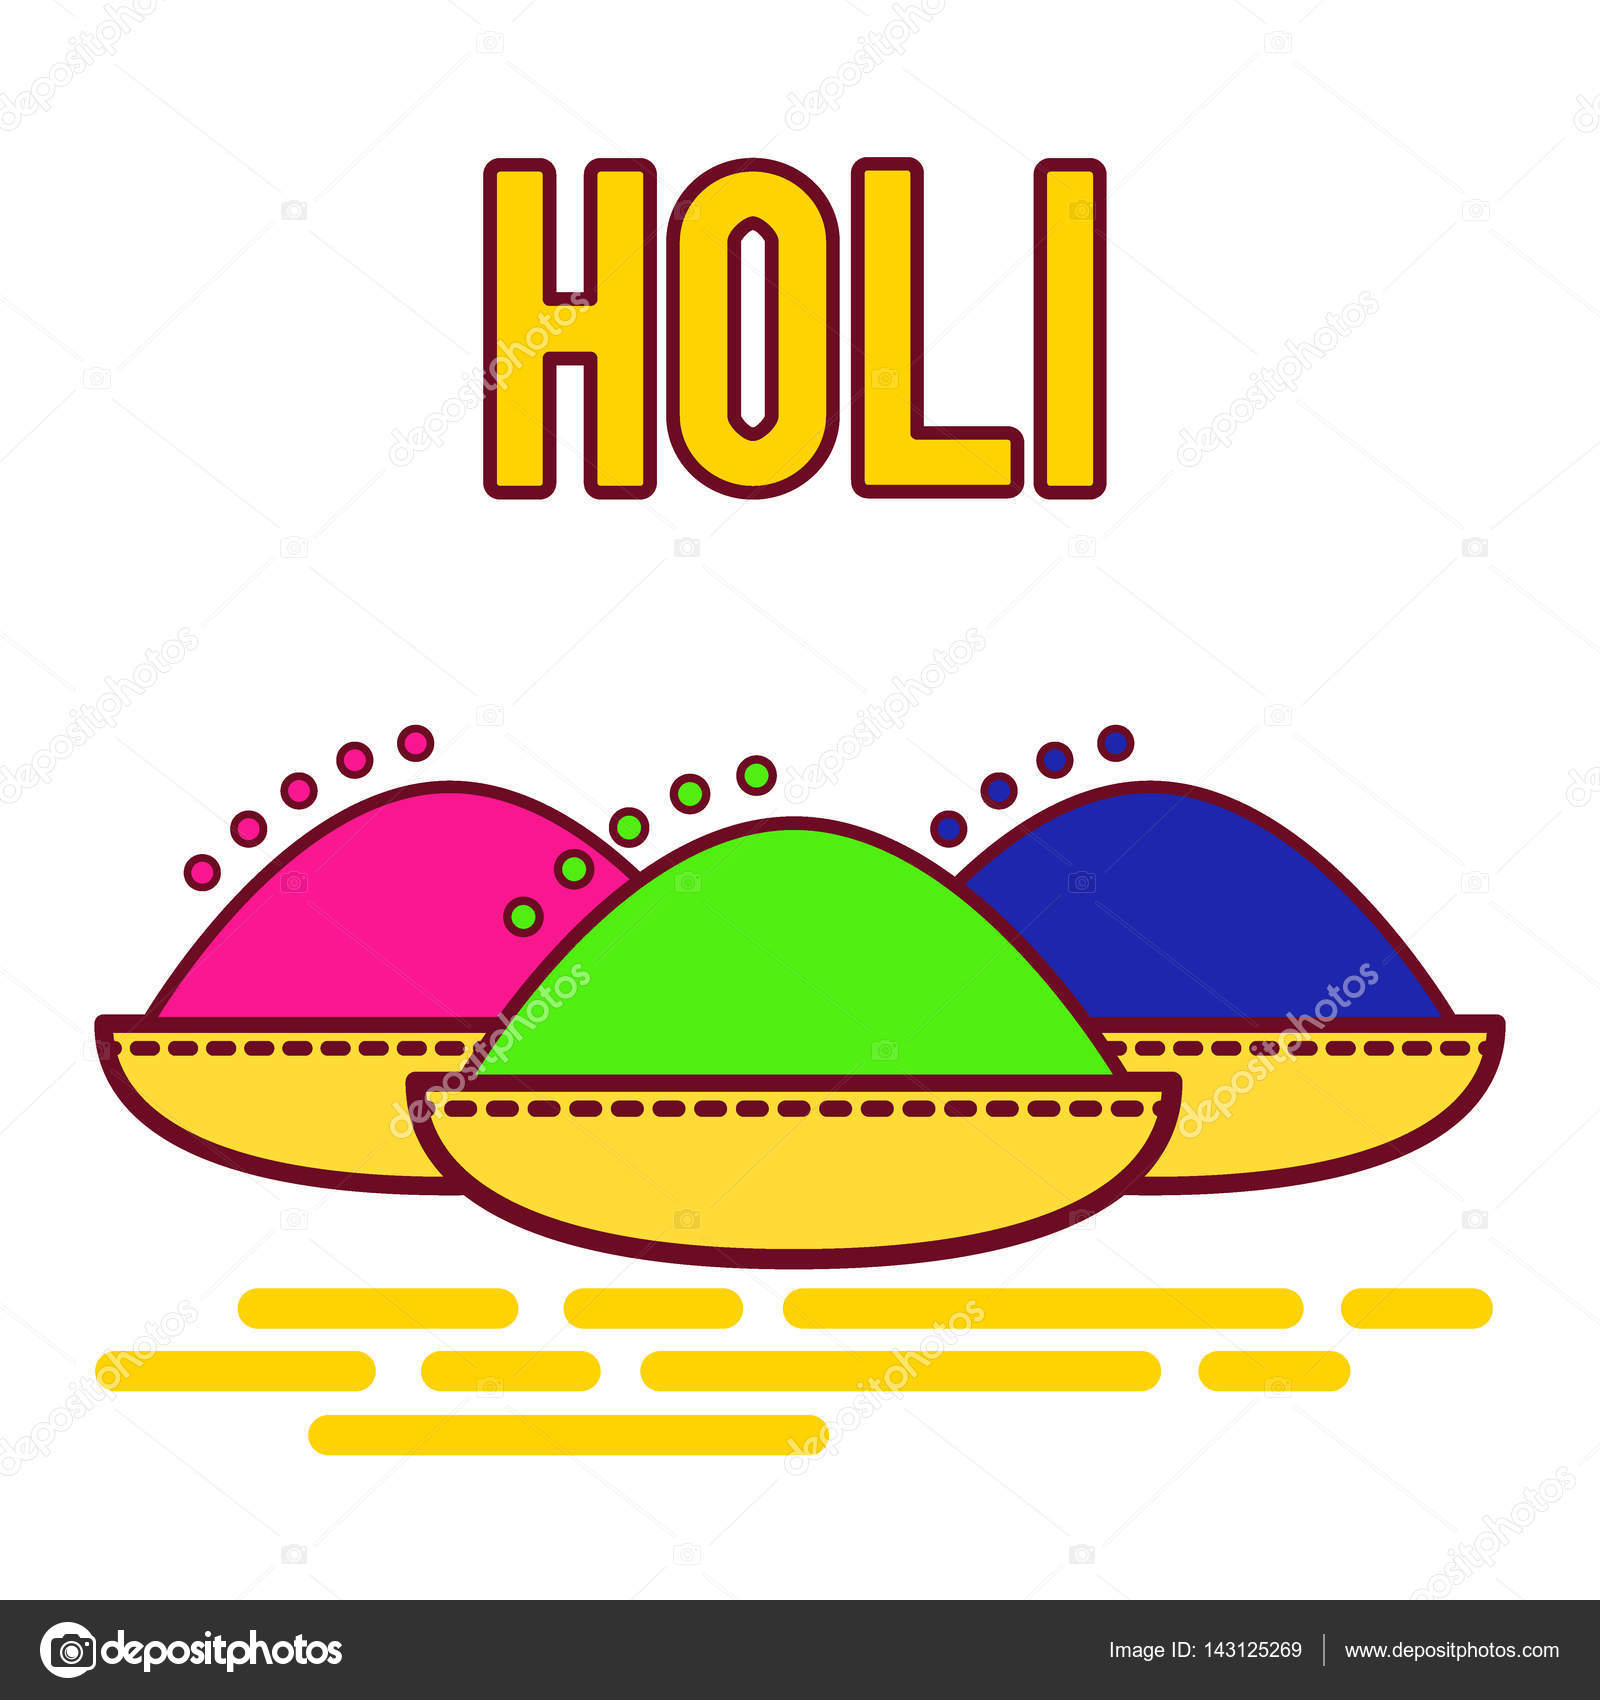 Holi Festival Of Spring And Bright Colors In India Traditional